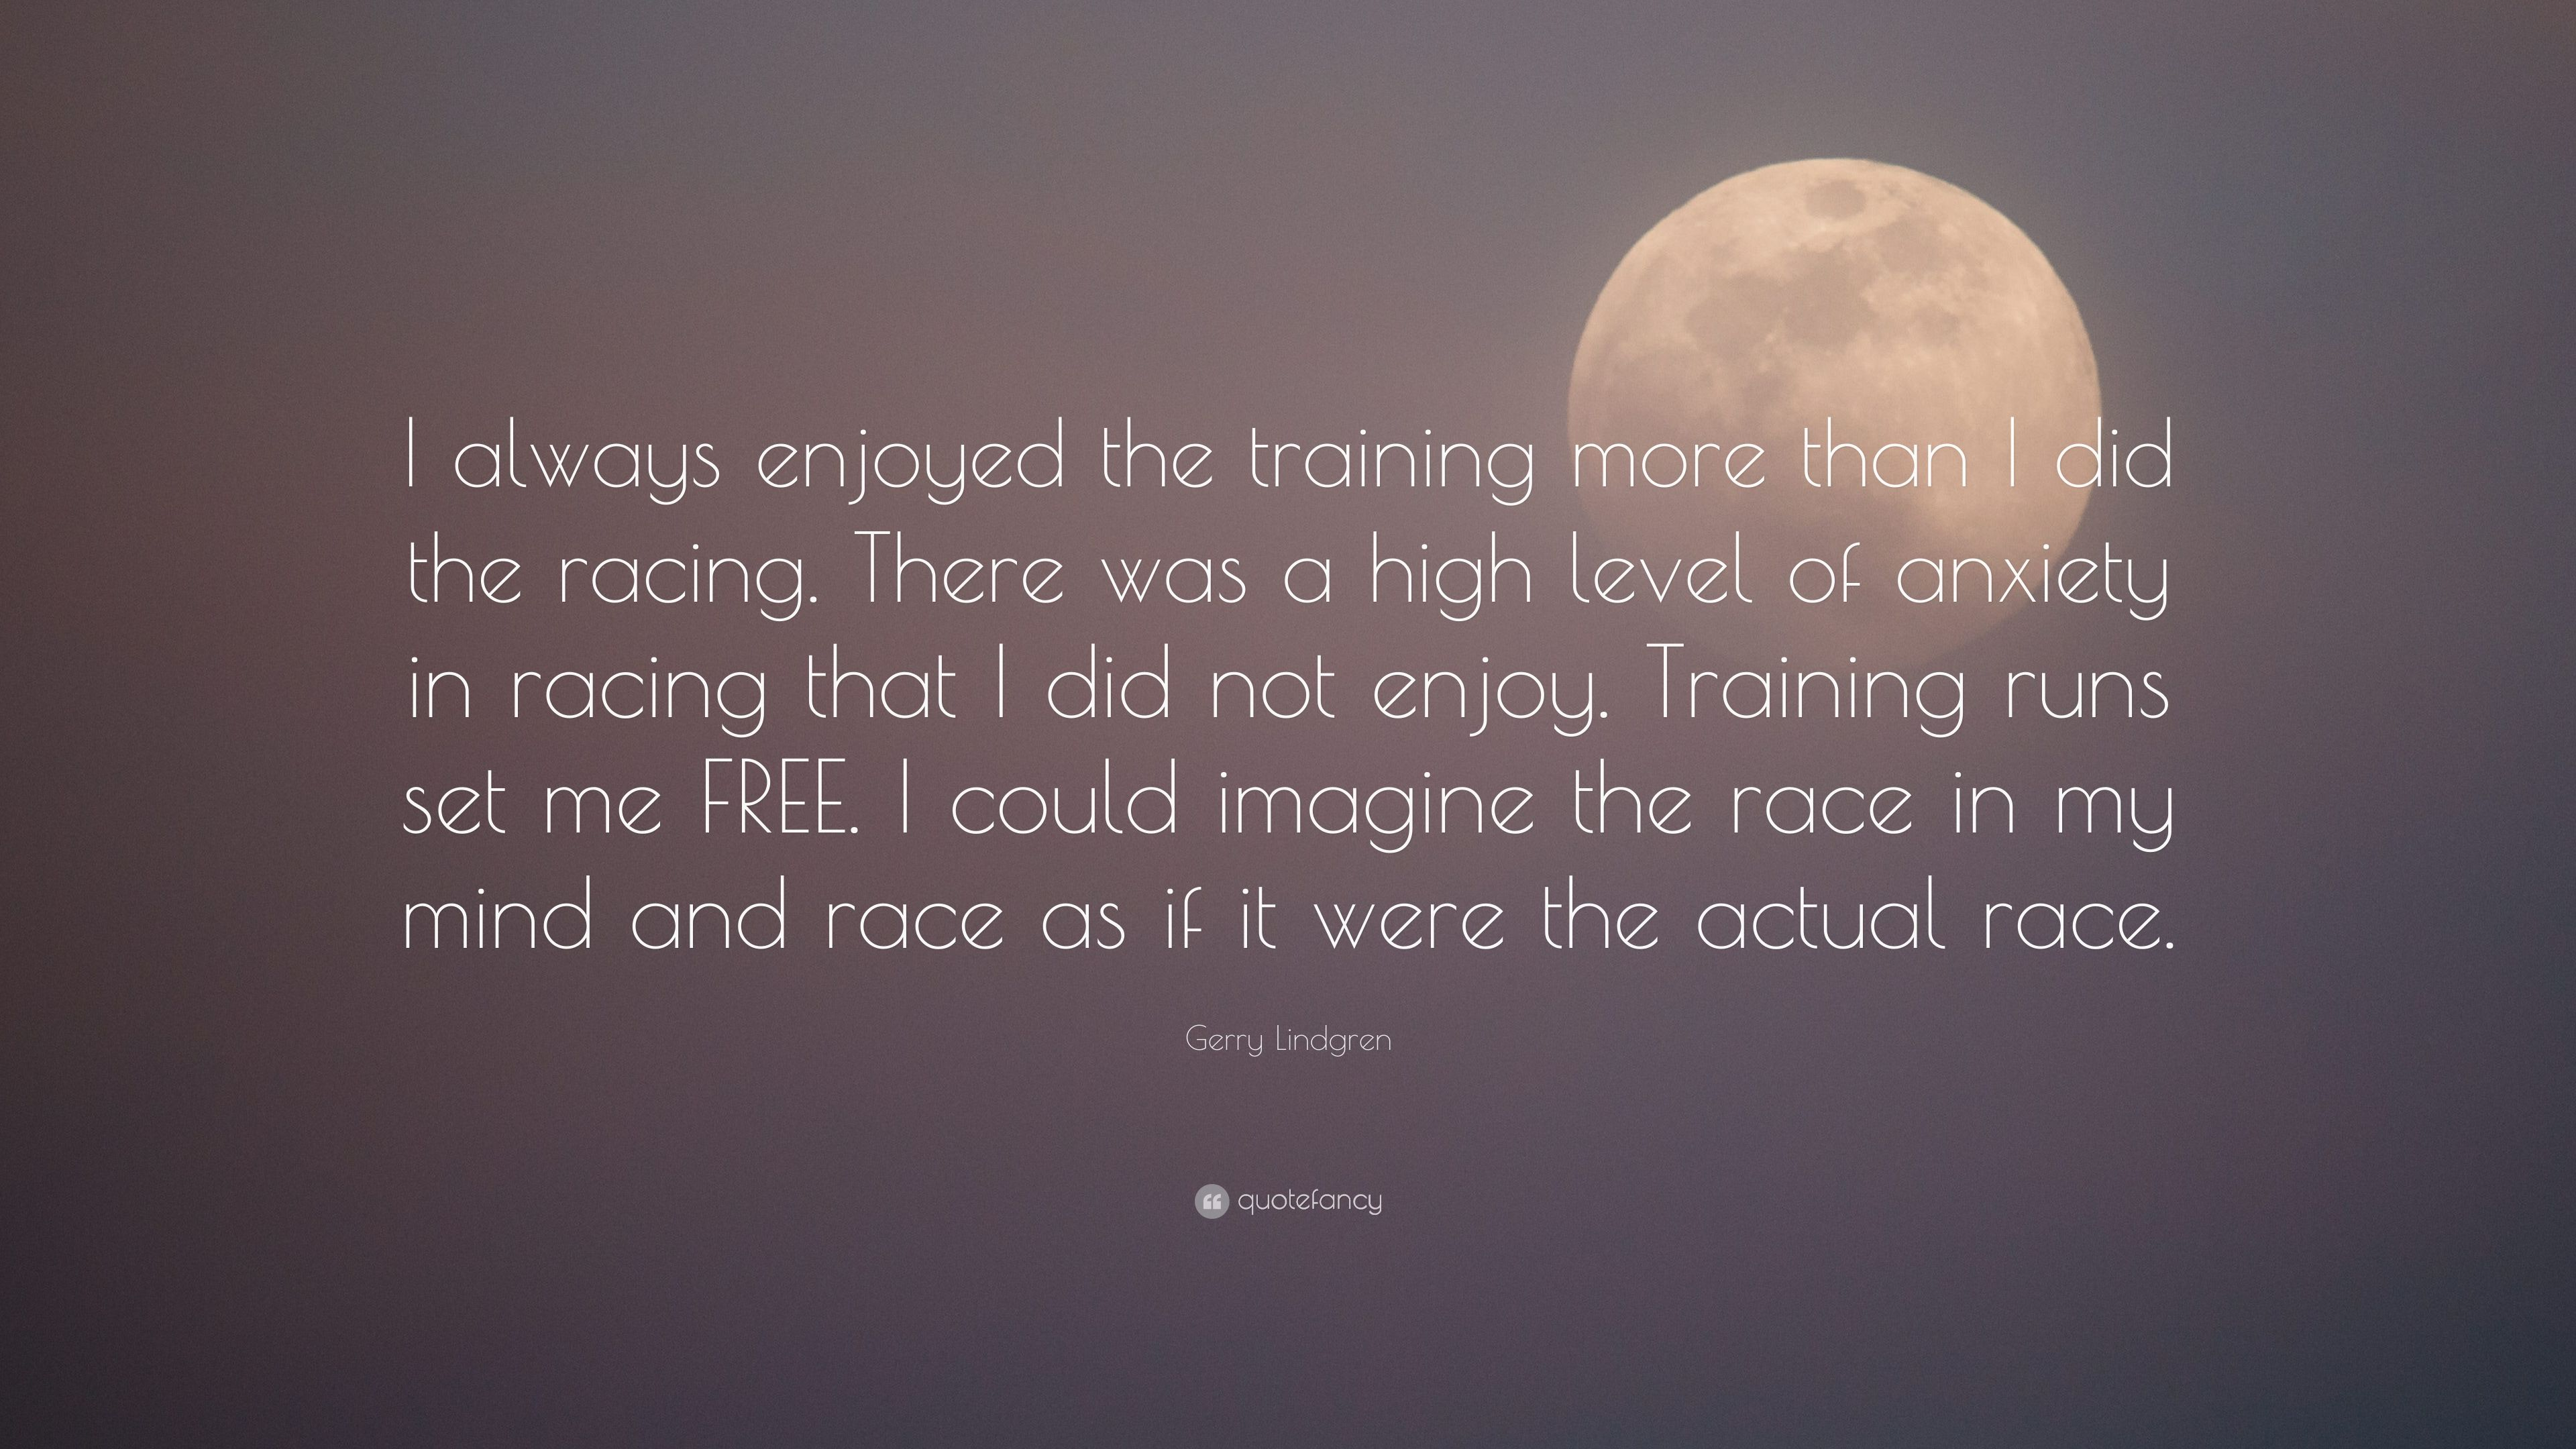 Gerry Lindgren Quote I Always Enjoyed The Training More Than I Did The Racing There Was A High Level Of Anxiety In Racing That I Did Not Enj 7 Wallpapers Quotefancy